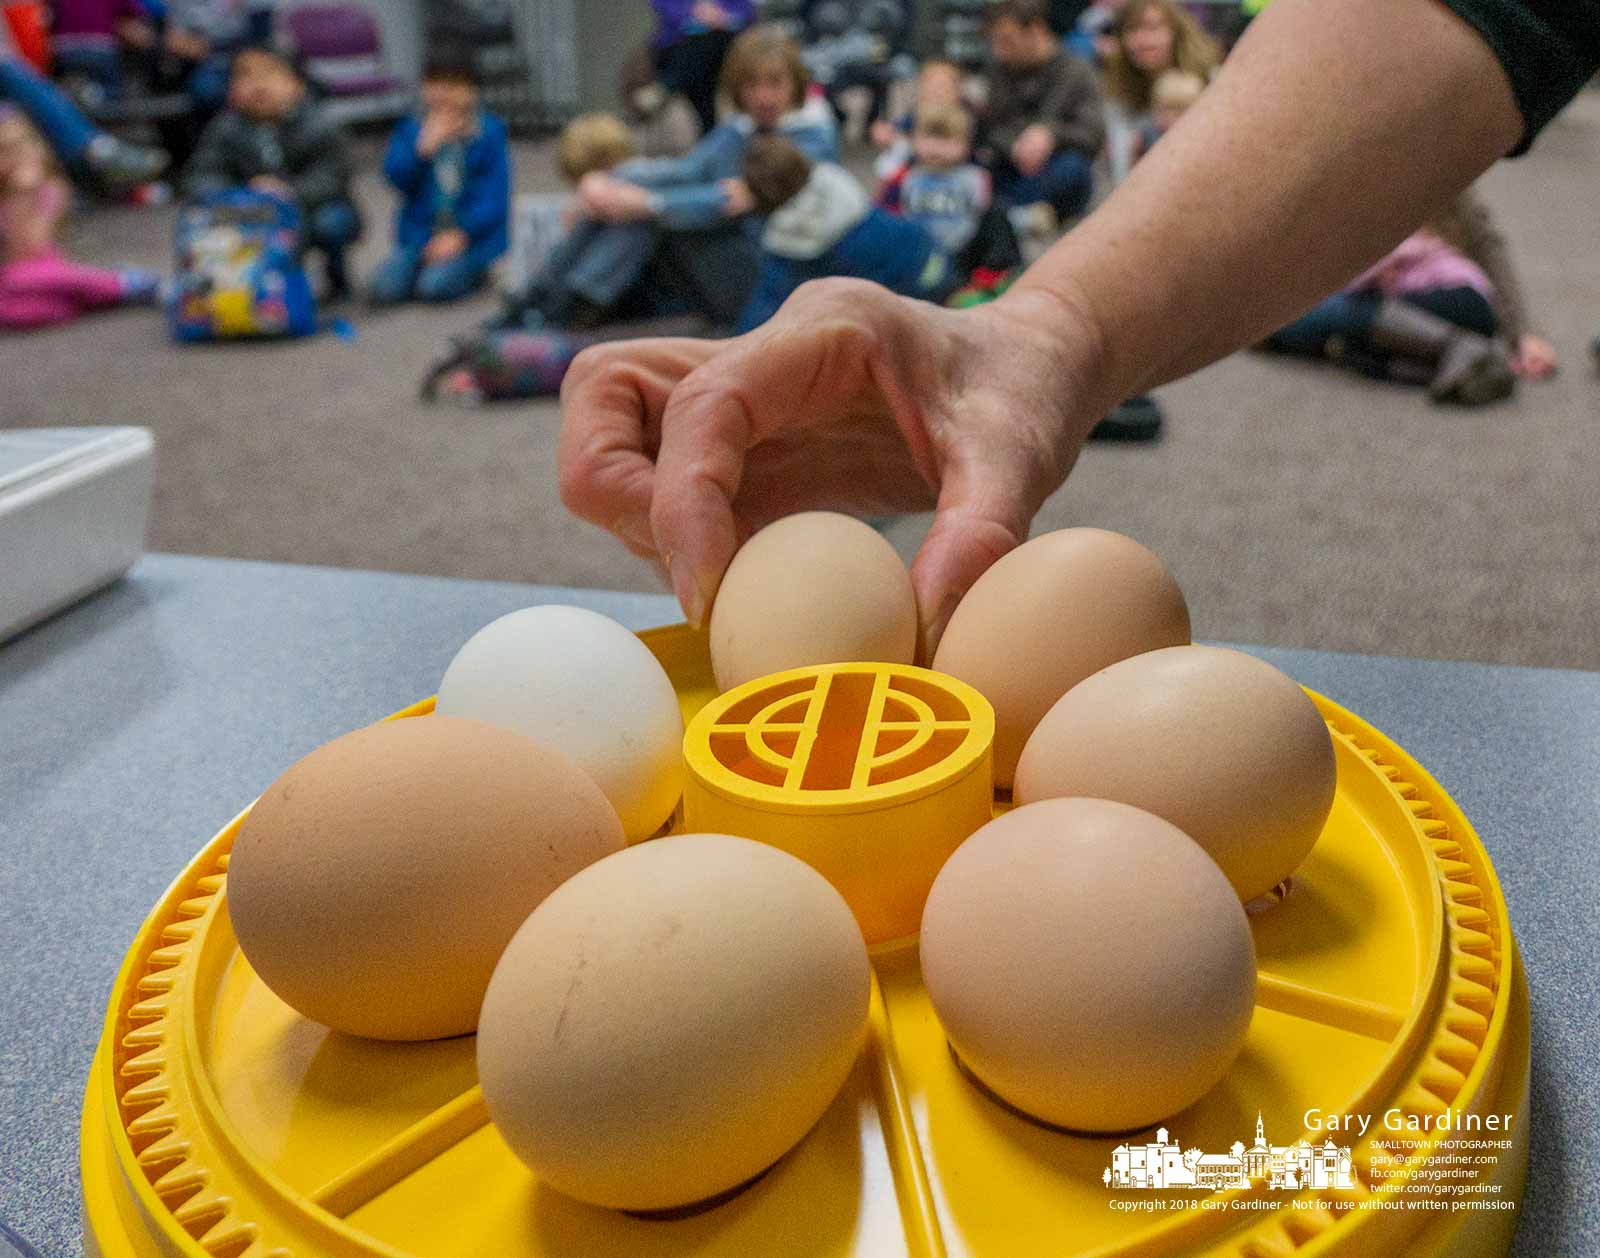 An instructor points out to children at the public library how she uses a small incubator to hatch eggs into chickens. My Final Photo for March 22, 2018.